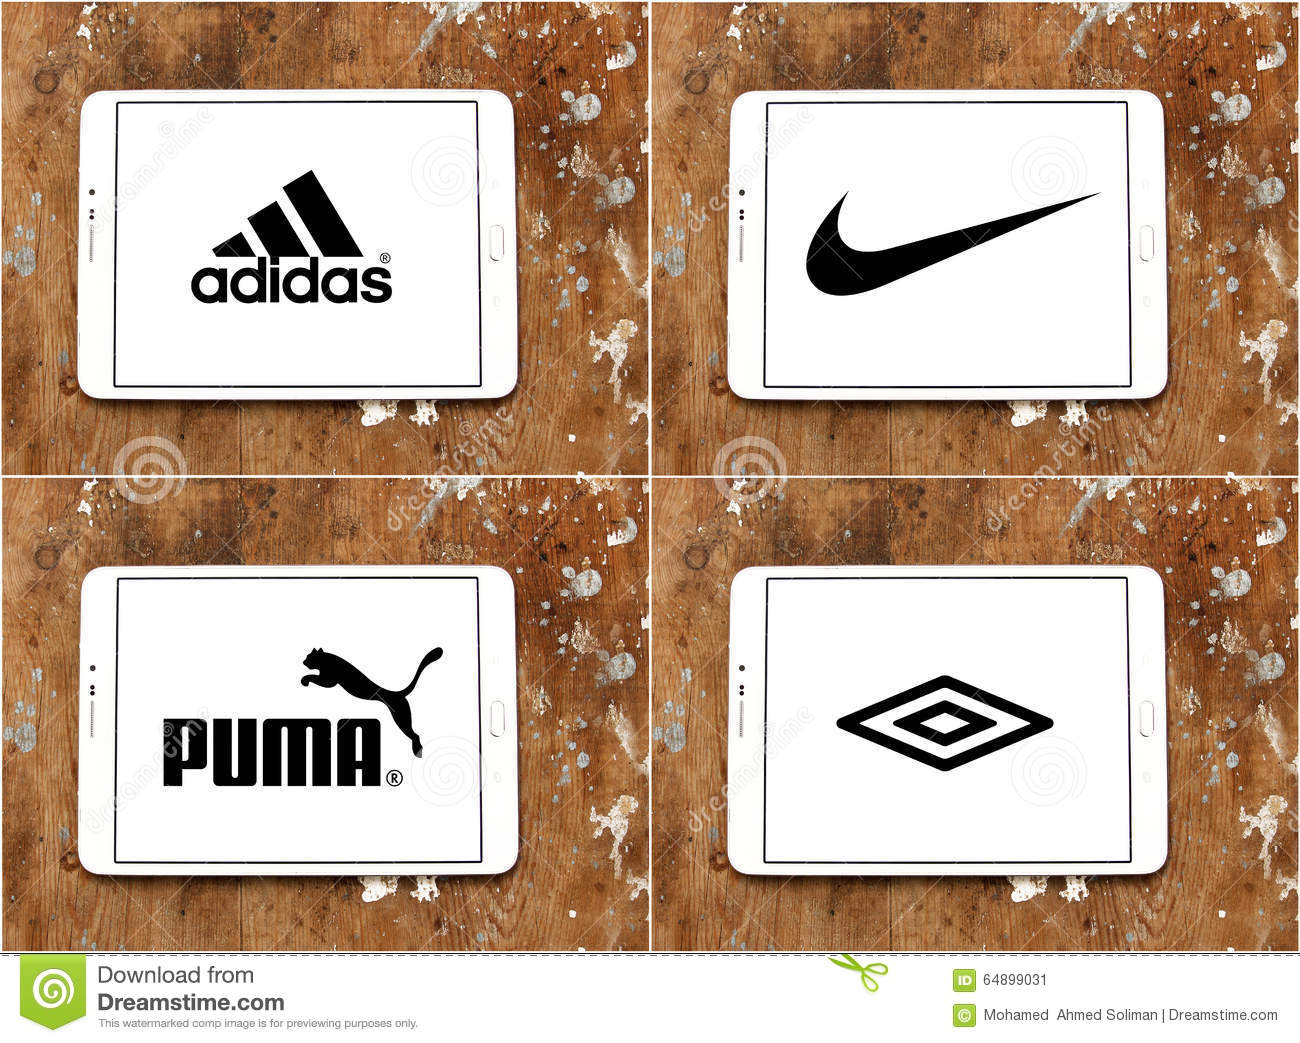 ce7bc13e420f Logos and brands of worldwide sportswear companies adidas